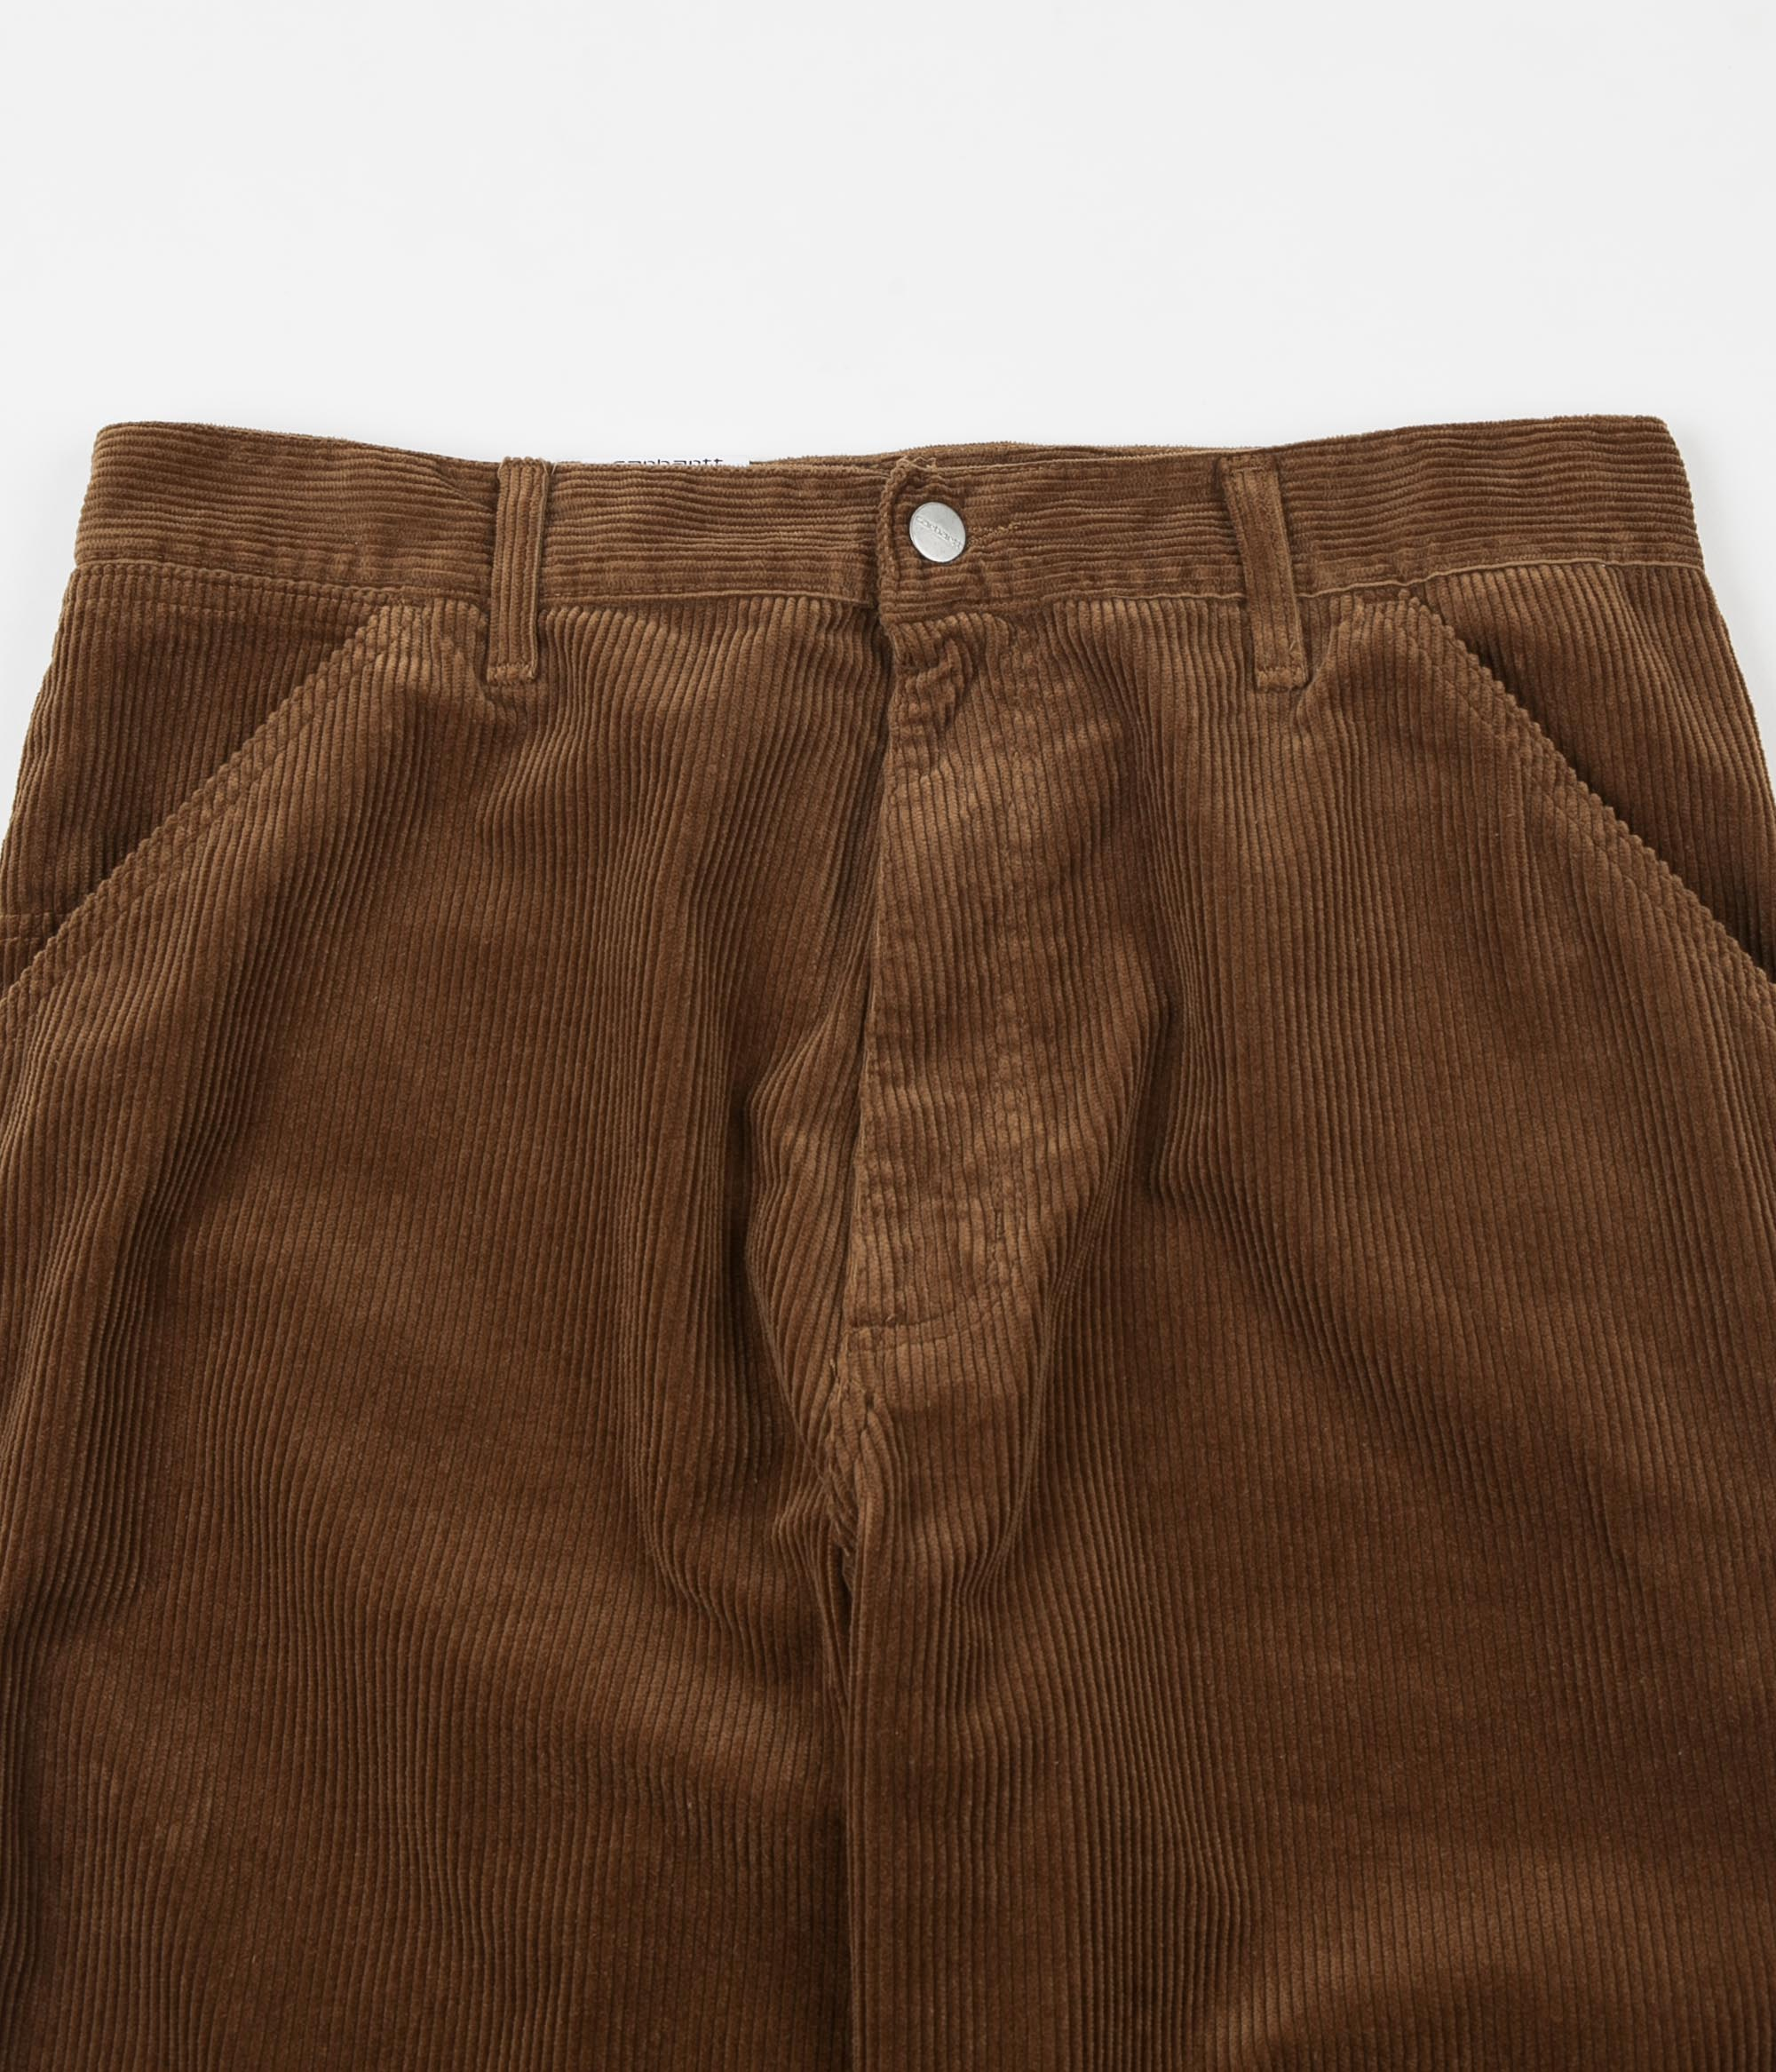 Carhartt Simple Cord Pants - Hamilton Brown